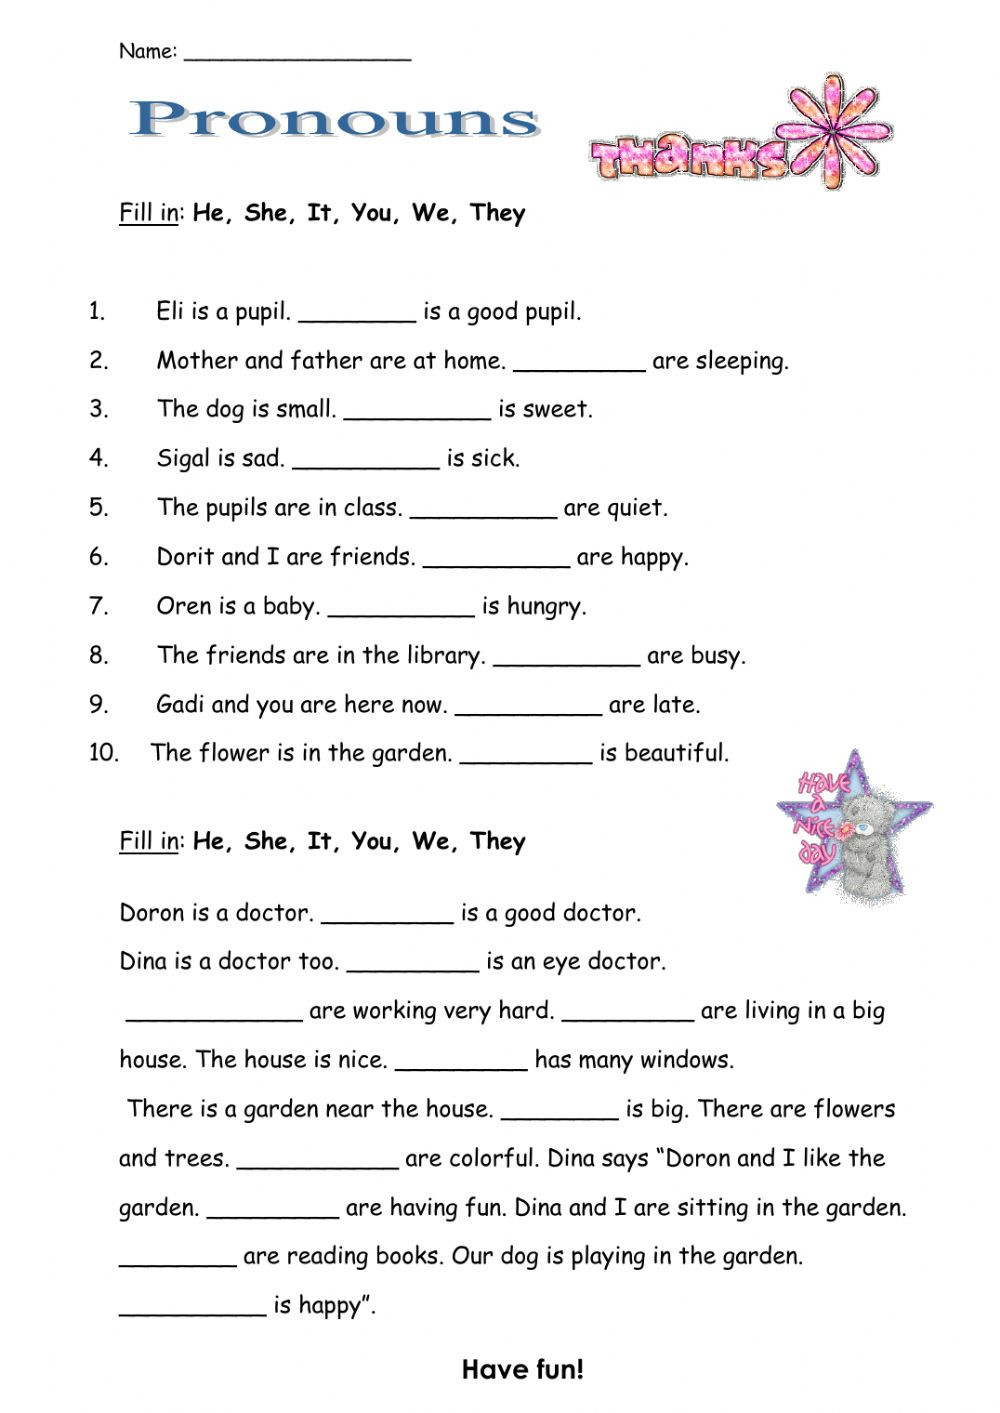 Pronouns Worksheets 5th Grade Pronouns Interactive Worksheet